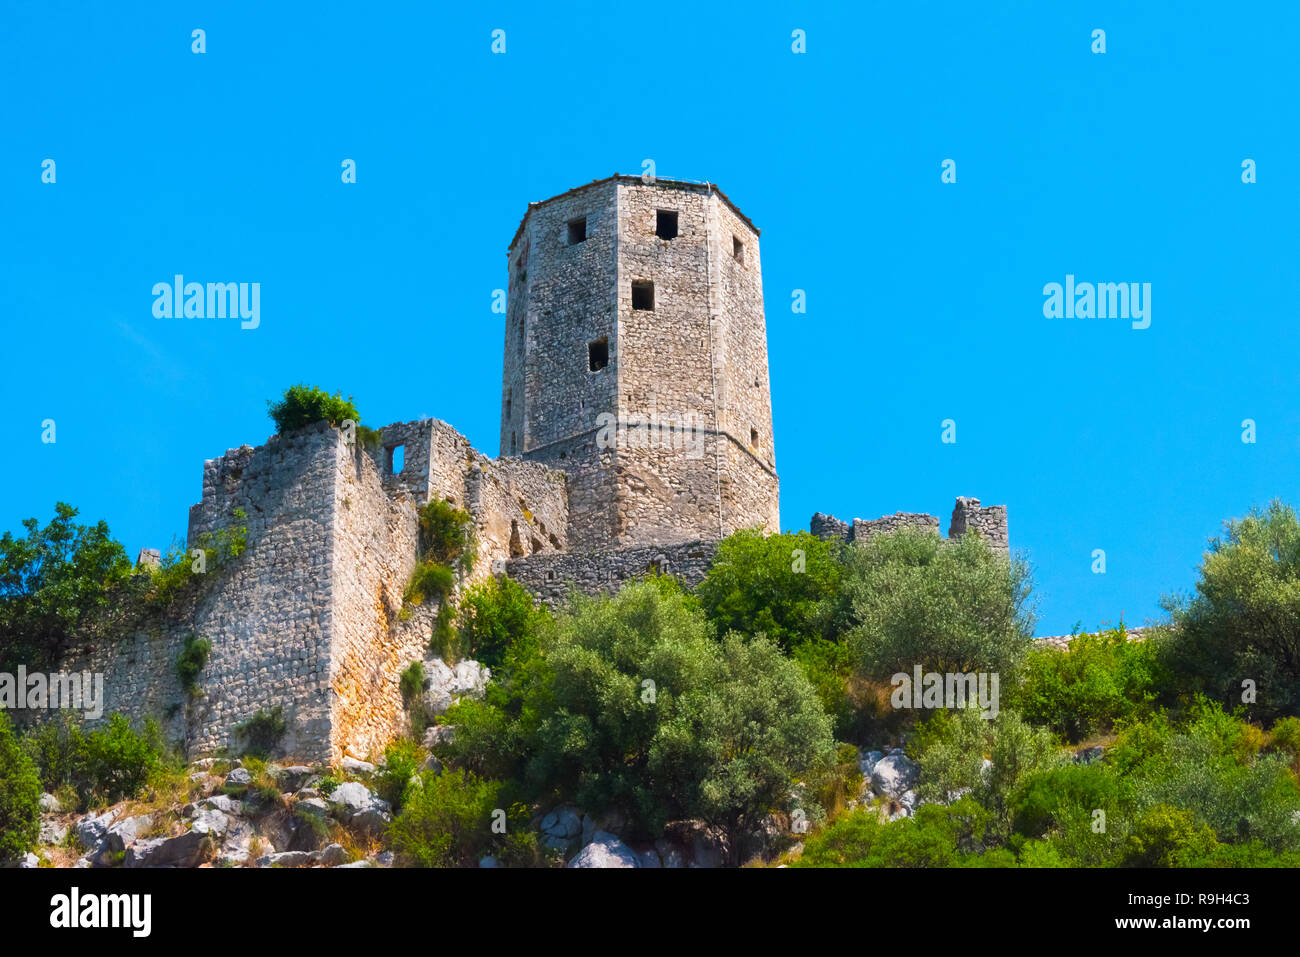 Towers of the Kula, Pocitelj, Bosnia and Herzegovina - Stock Image